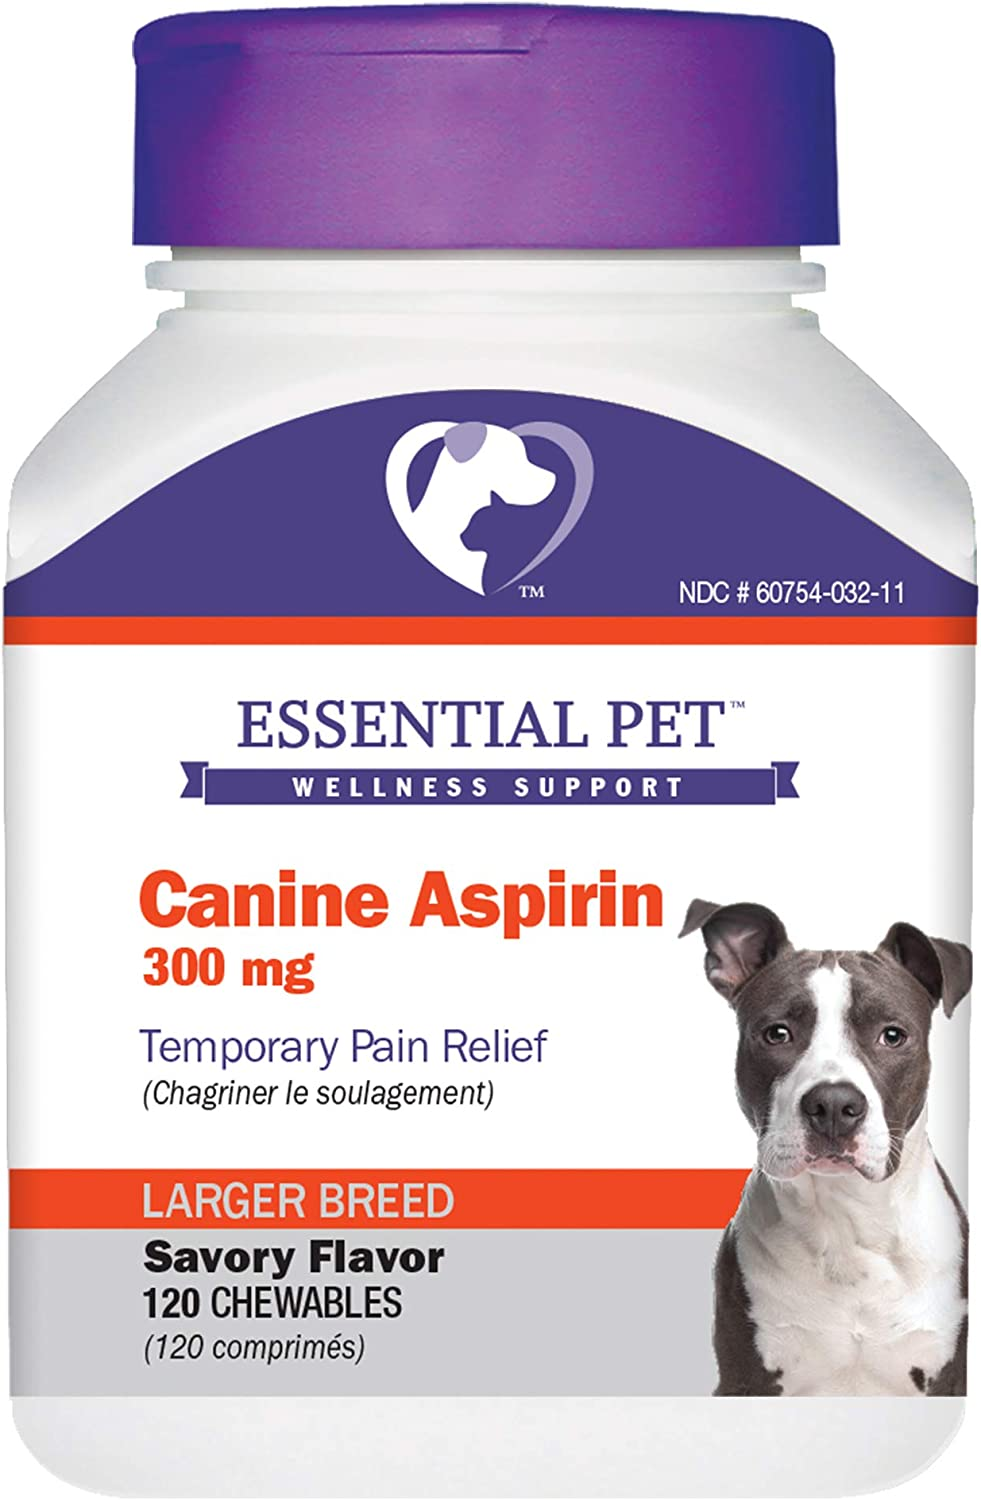 Essential Pet Canine Aspirin 300mg Temporary Pain Relief for Larger Breed Dogs